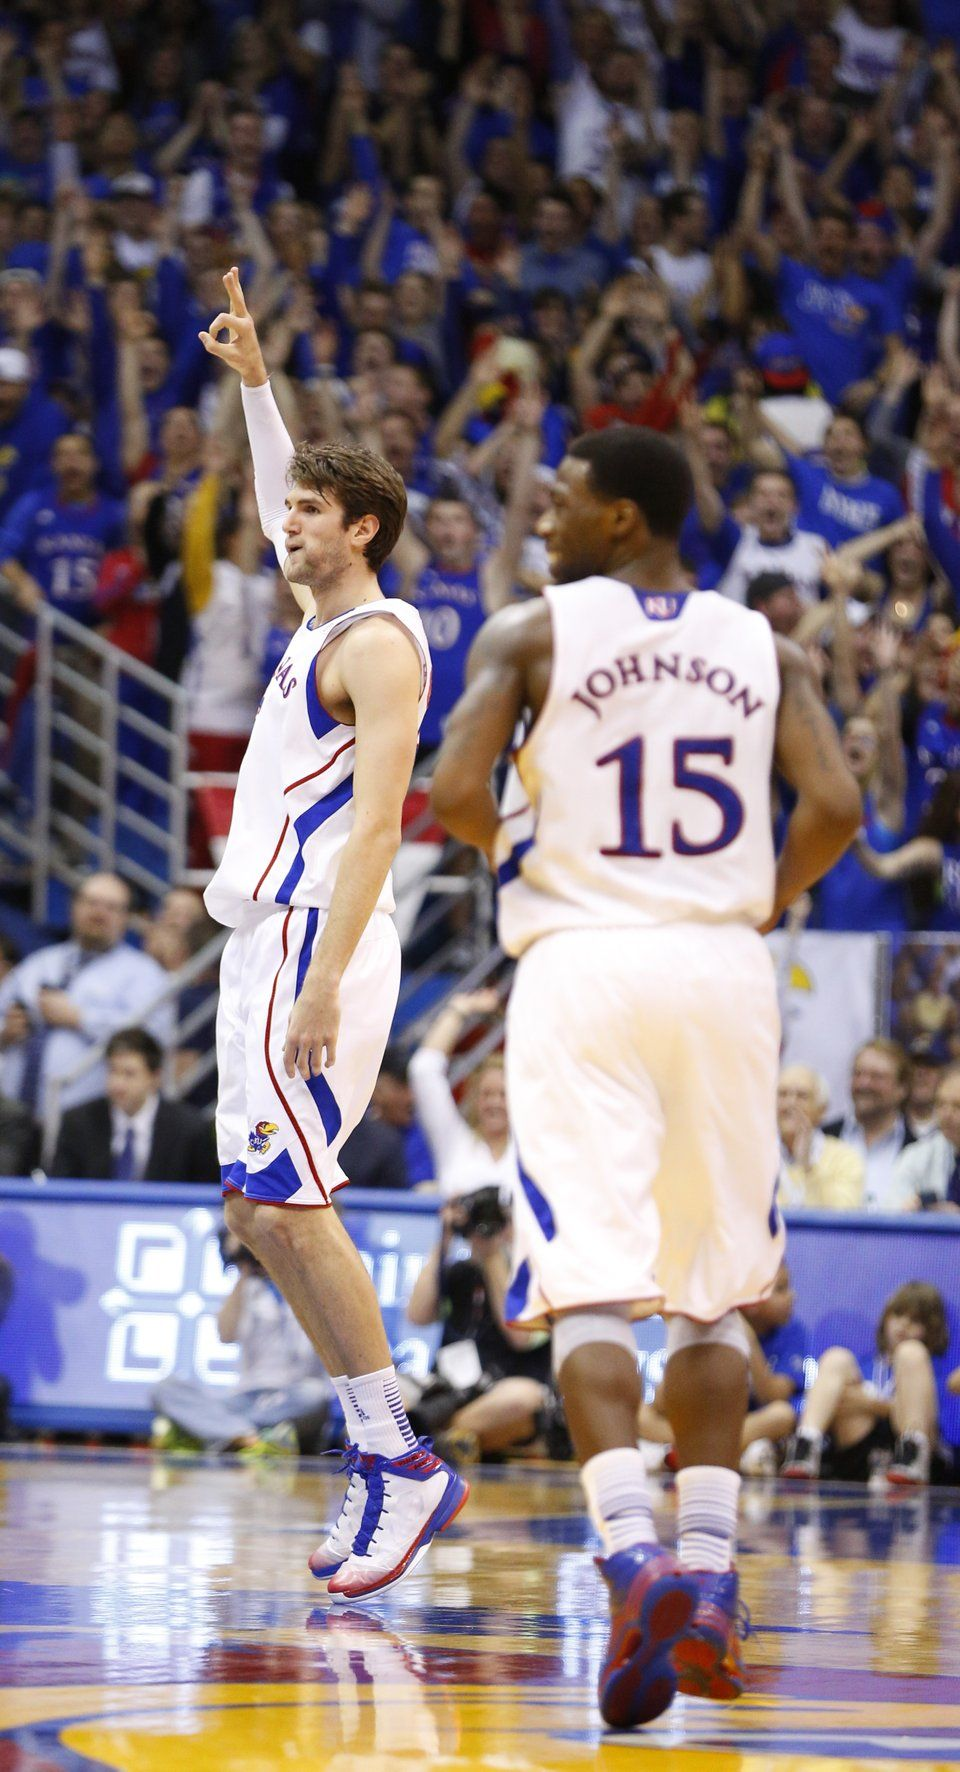 Withey for 3 KU...saw him practicing for this at shoot